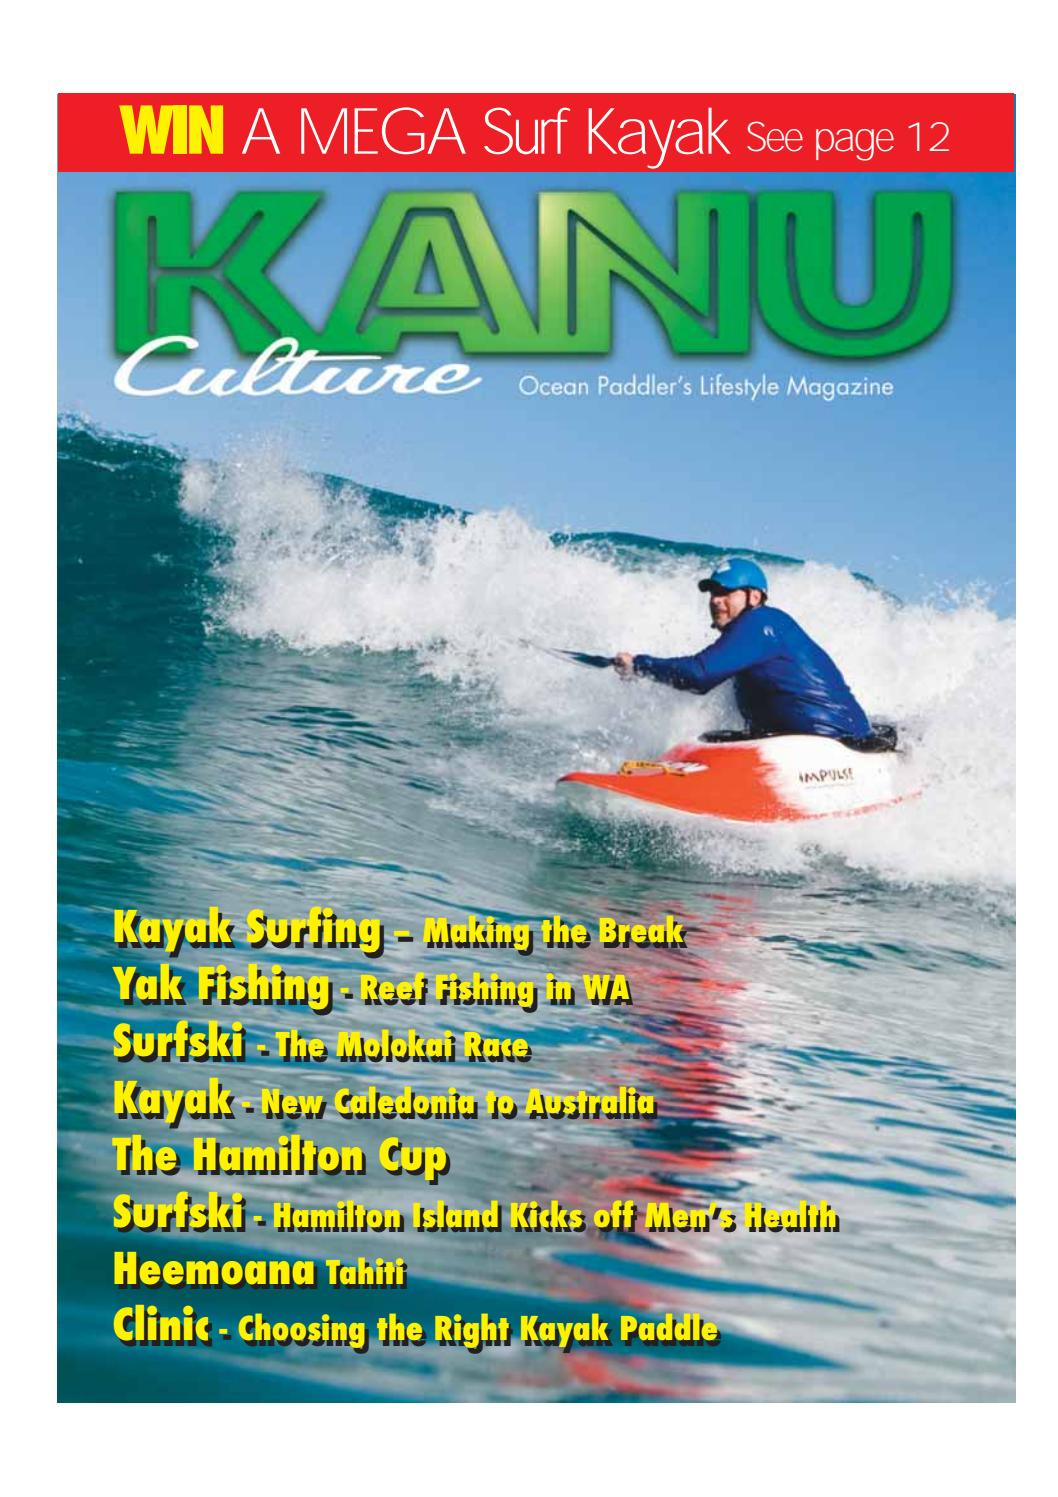 da66ae44e2 KANUculture Ezine Dec 2006 by Kanu Culture / Batini Books - issuu